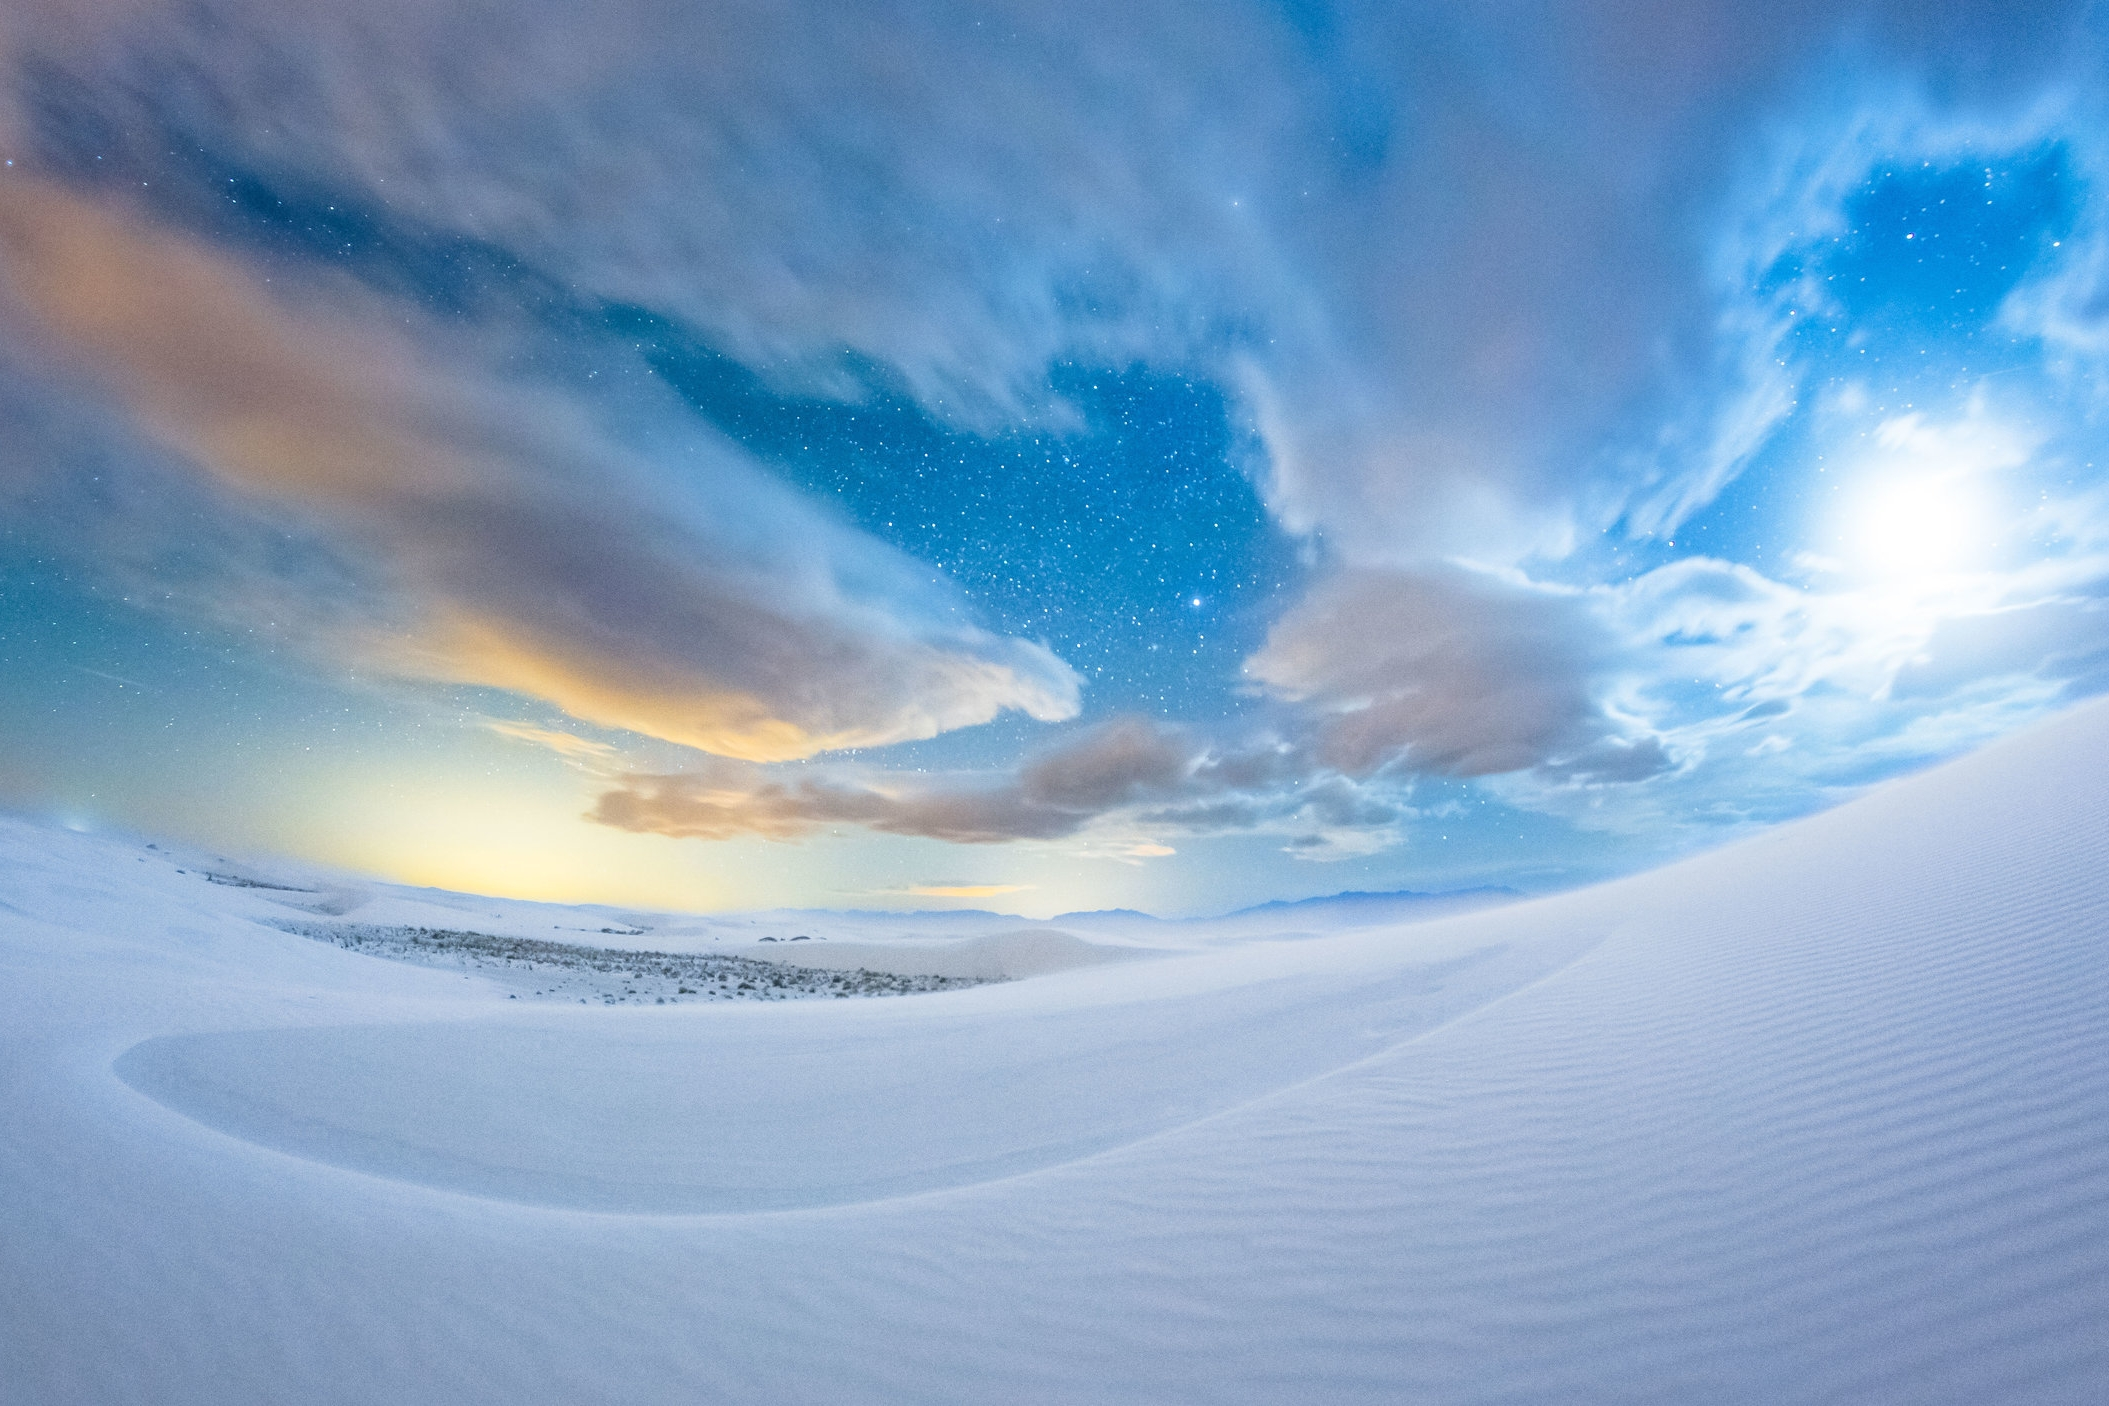 The beautiful white sand dunes that should not exist